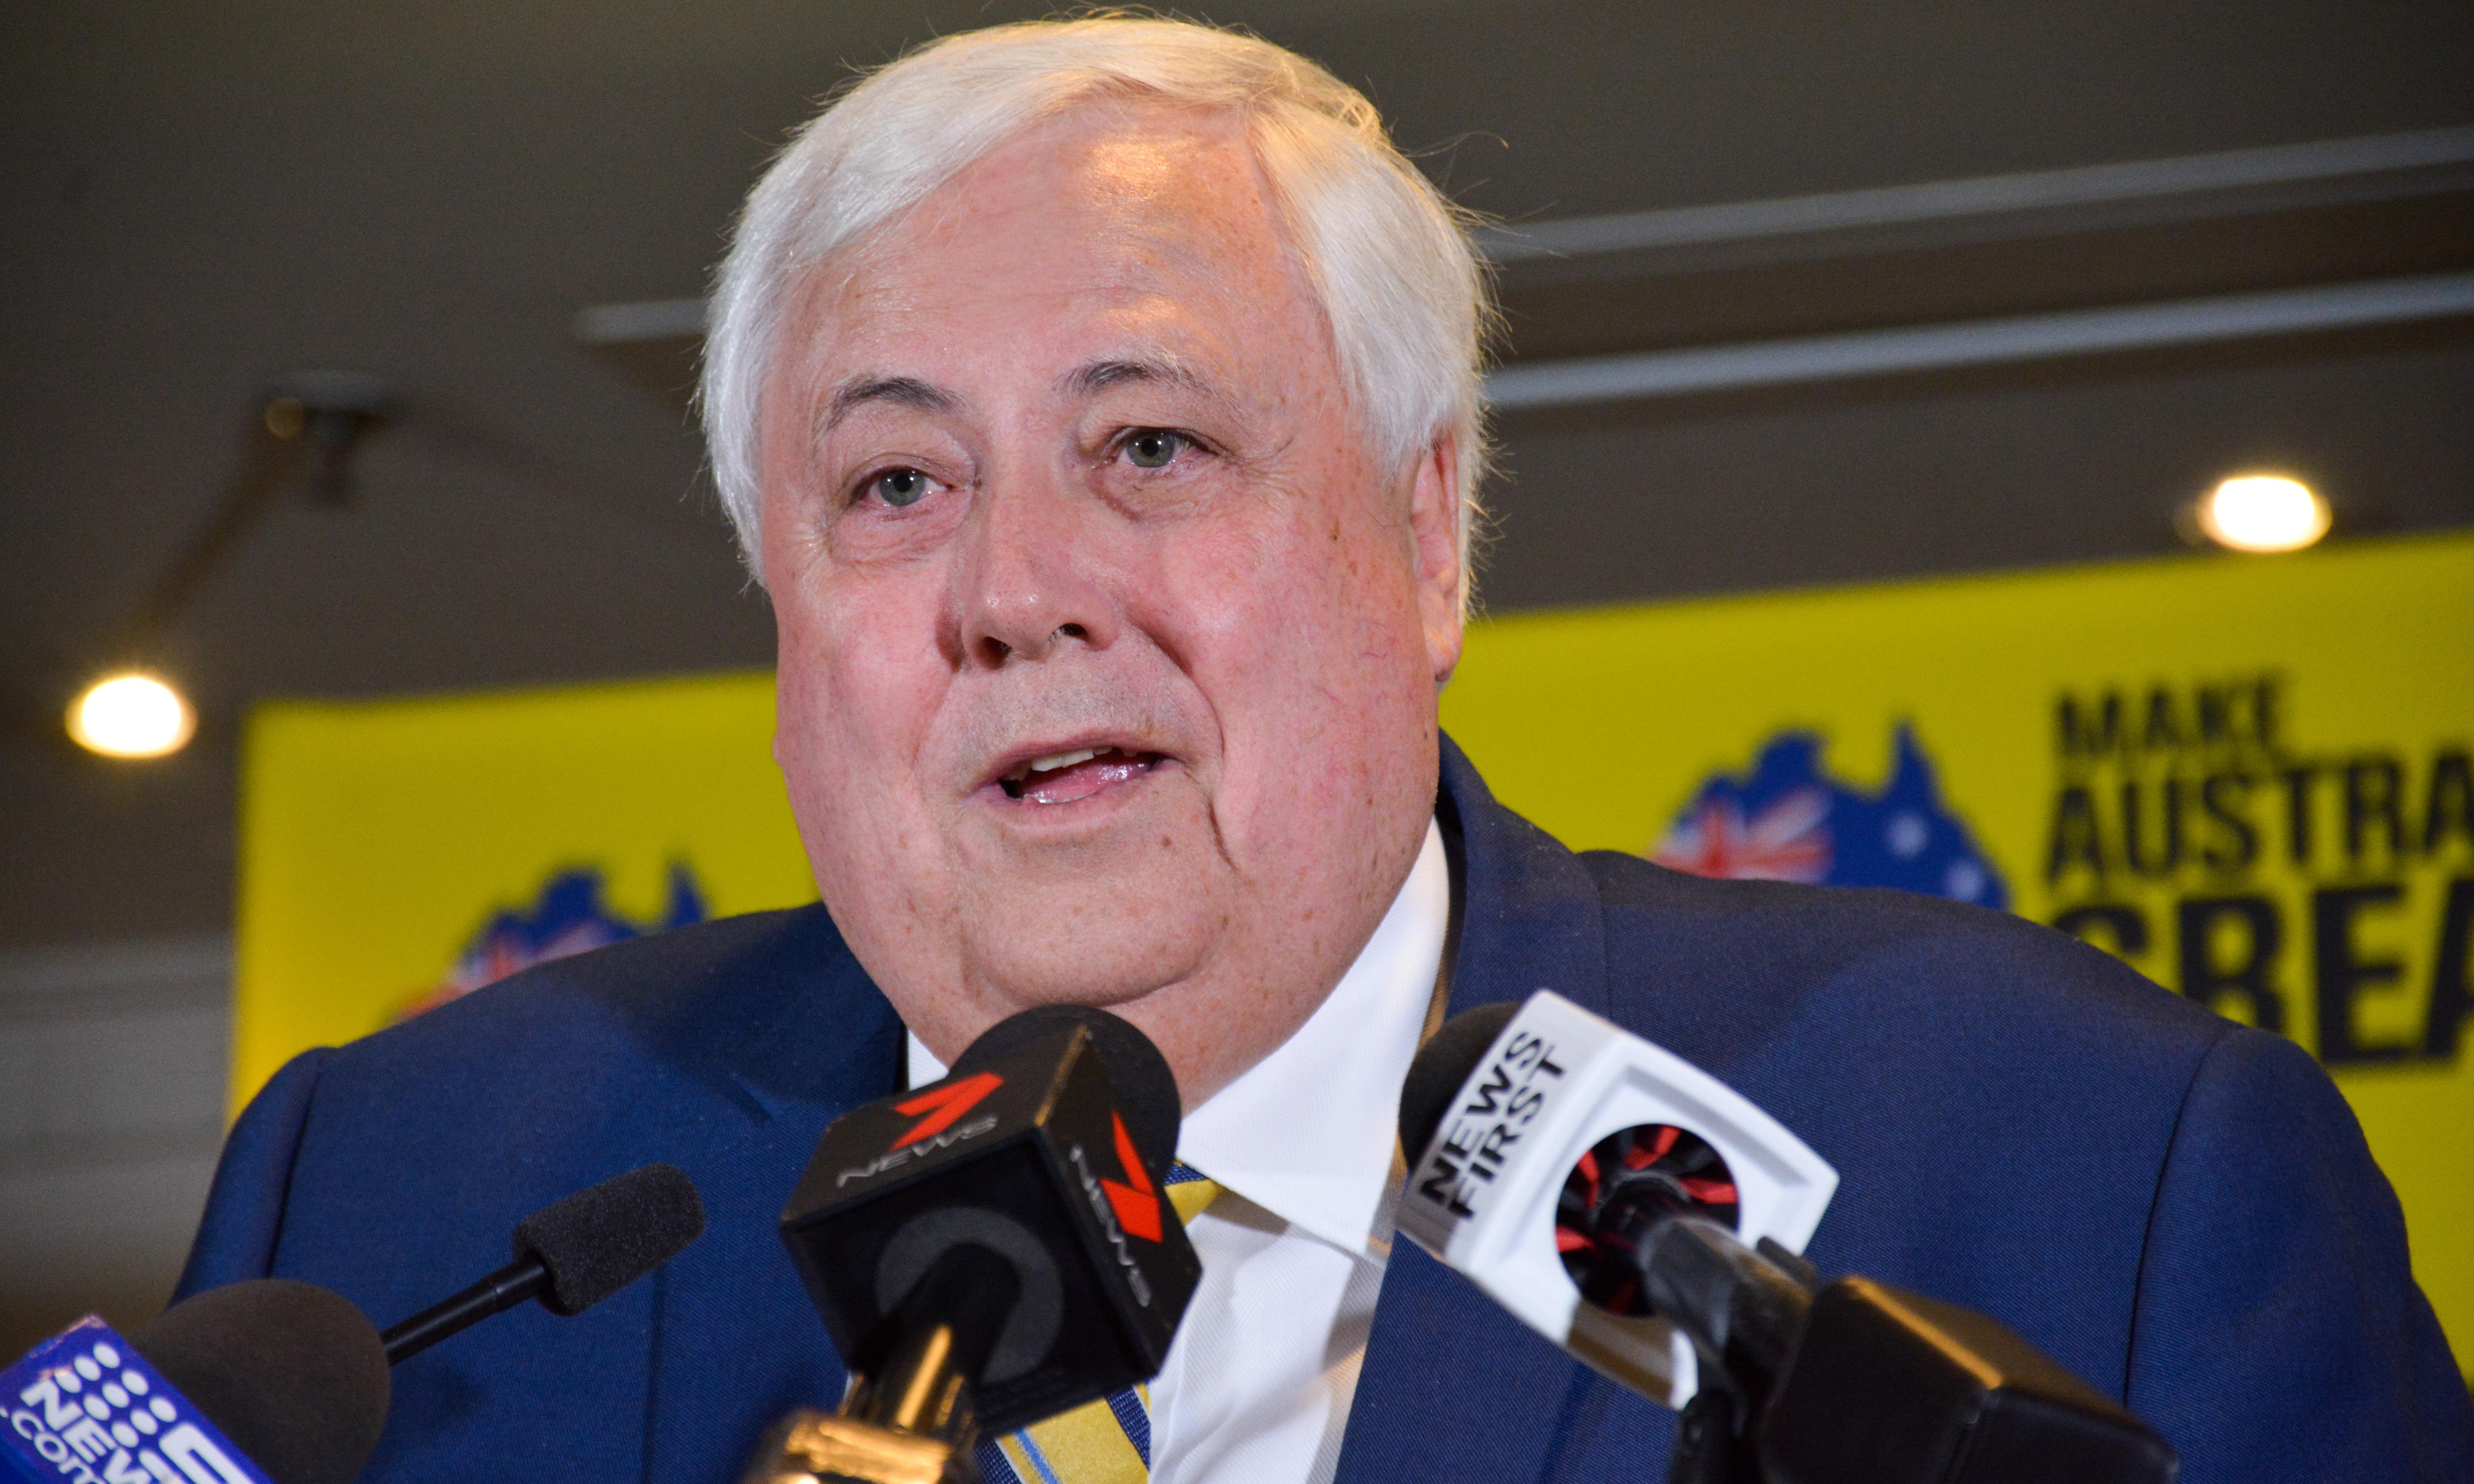 Clive Palmer takes aim at WA premier after court rules mine owes him millions